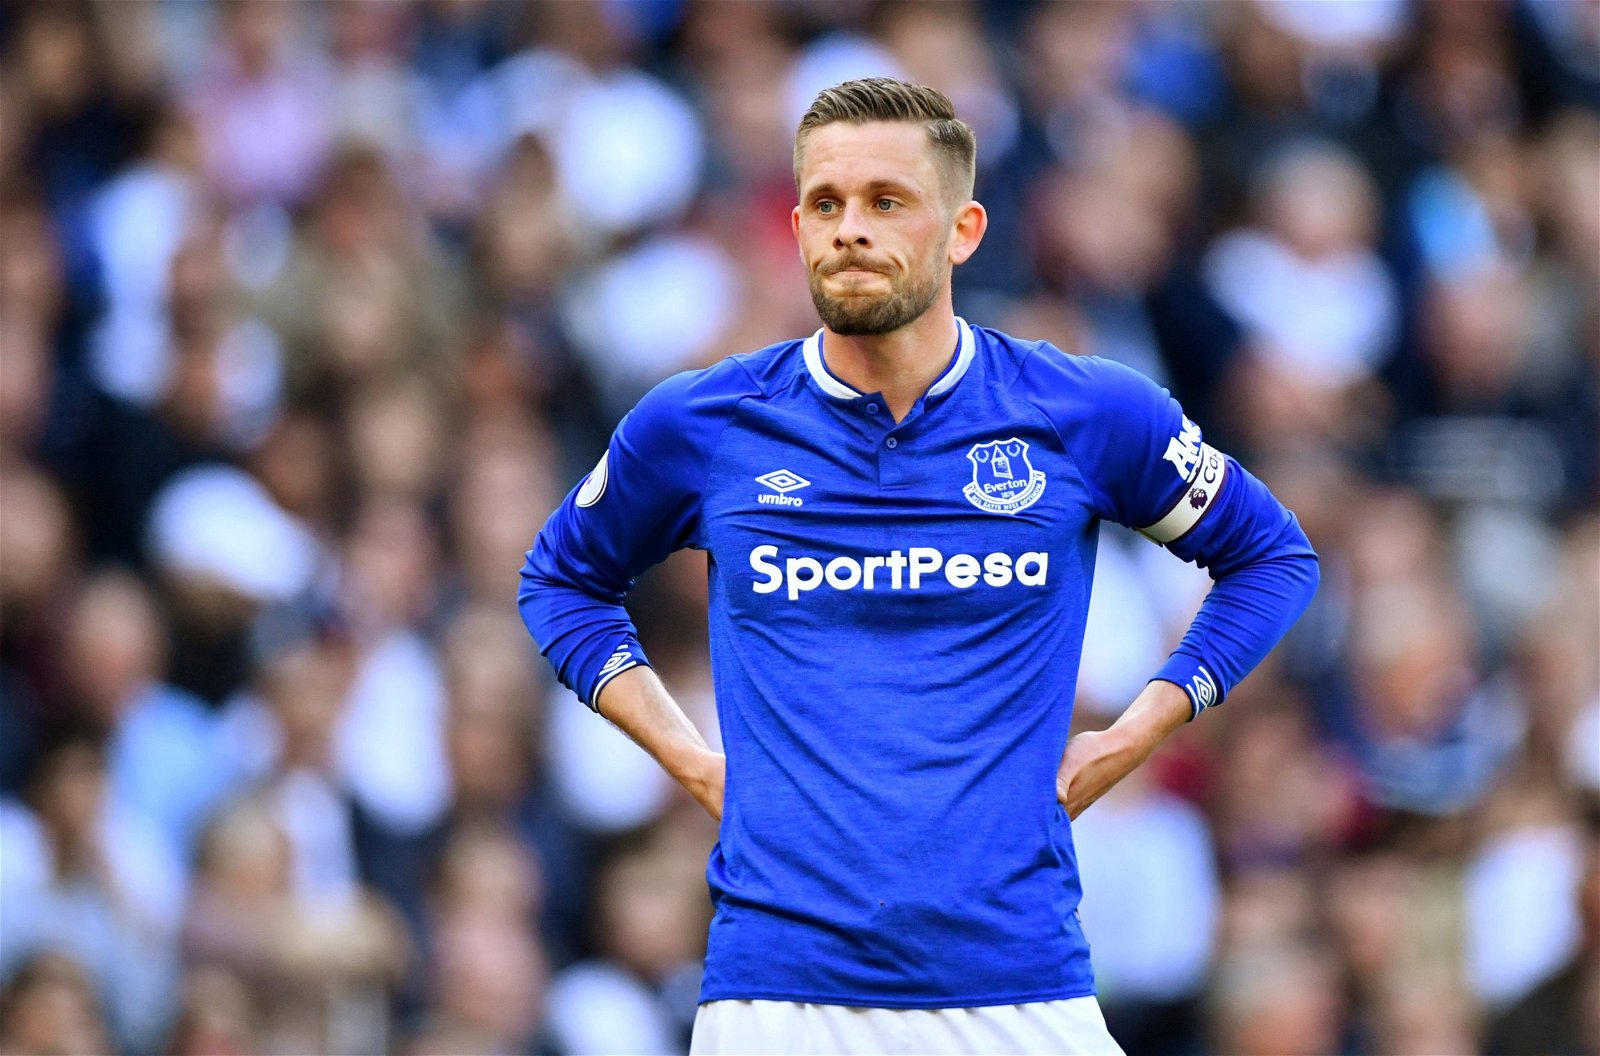 everton midfielder gylfi sigurdsson captain - Once valued £45m, now rated £16.2m: Levy played a blinder with Spurs' Villas-Boas flop - opinion